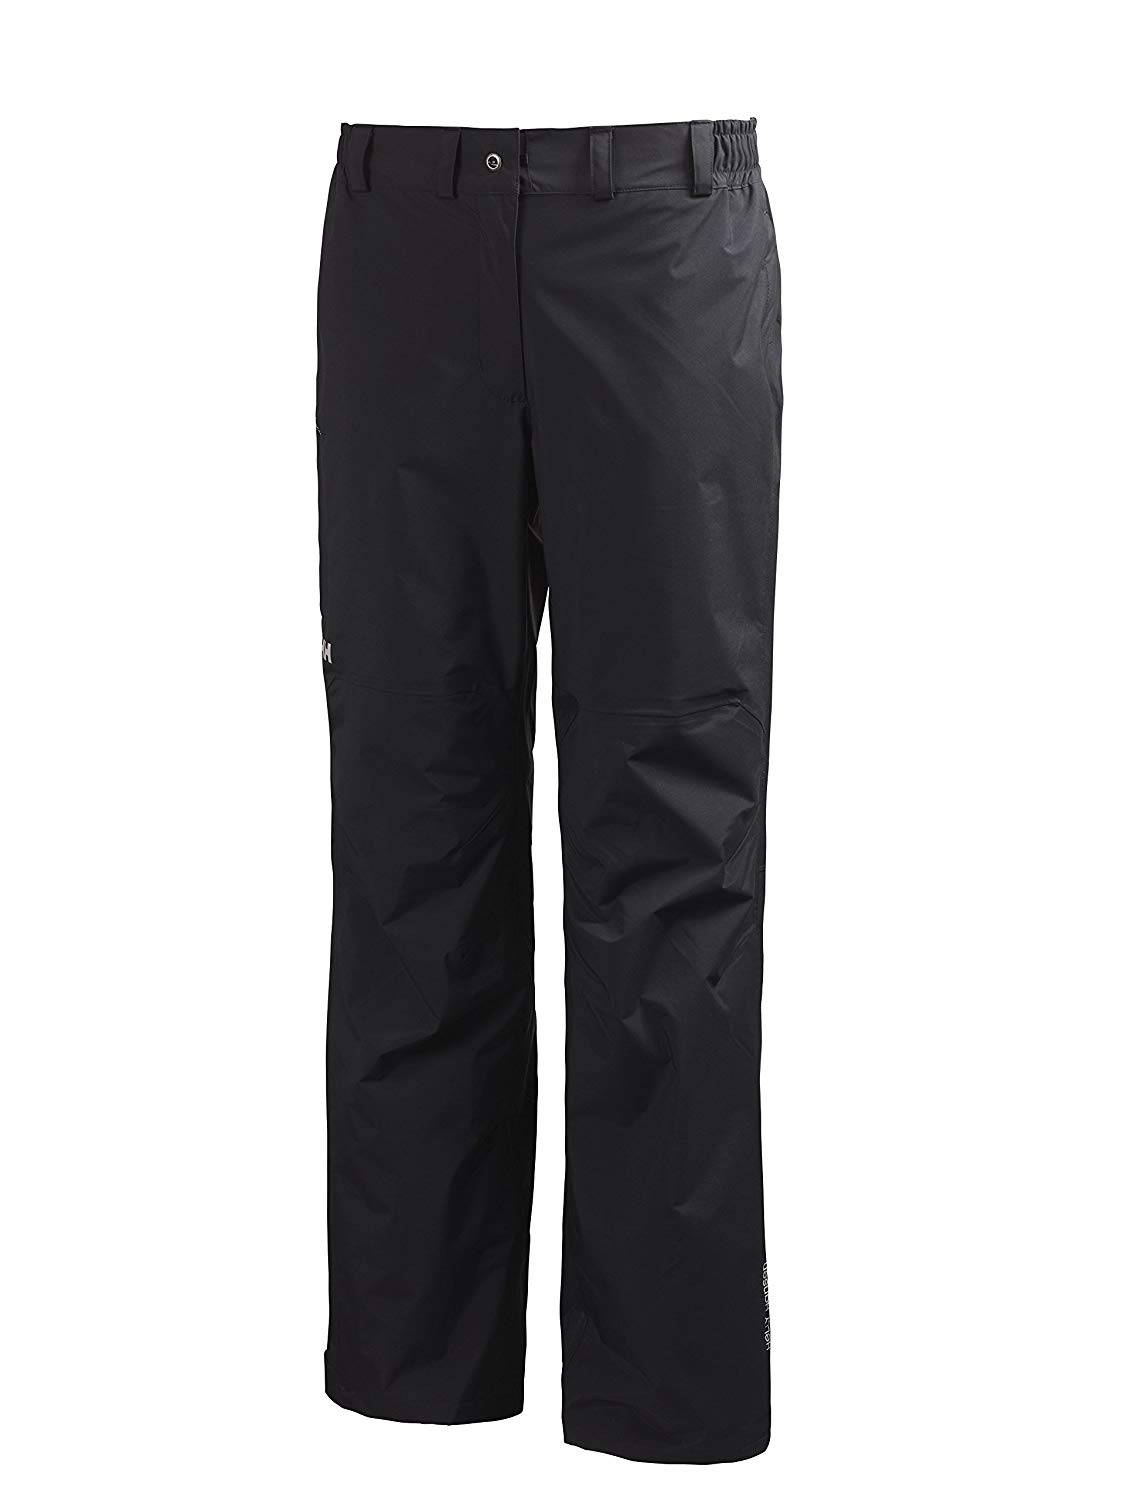 Helly Hansen Women's Packable Rain Pants, 3X-Large, Black